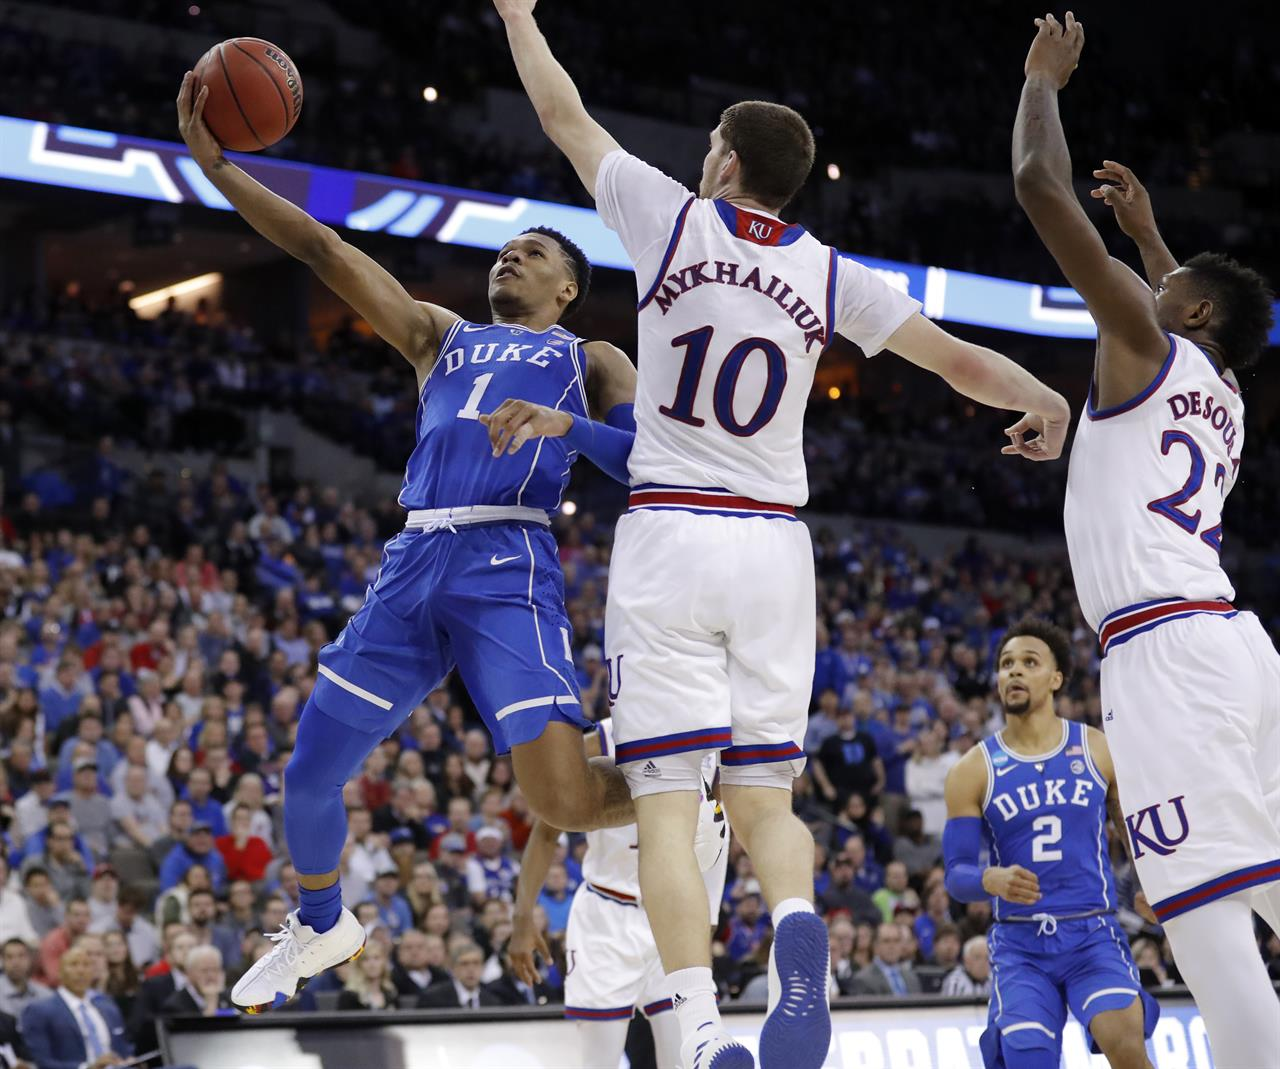 a3882bc28 ... NCAA Latest  Kansas gets past Duke in OT classic for Final 4 ...